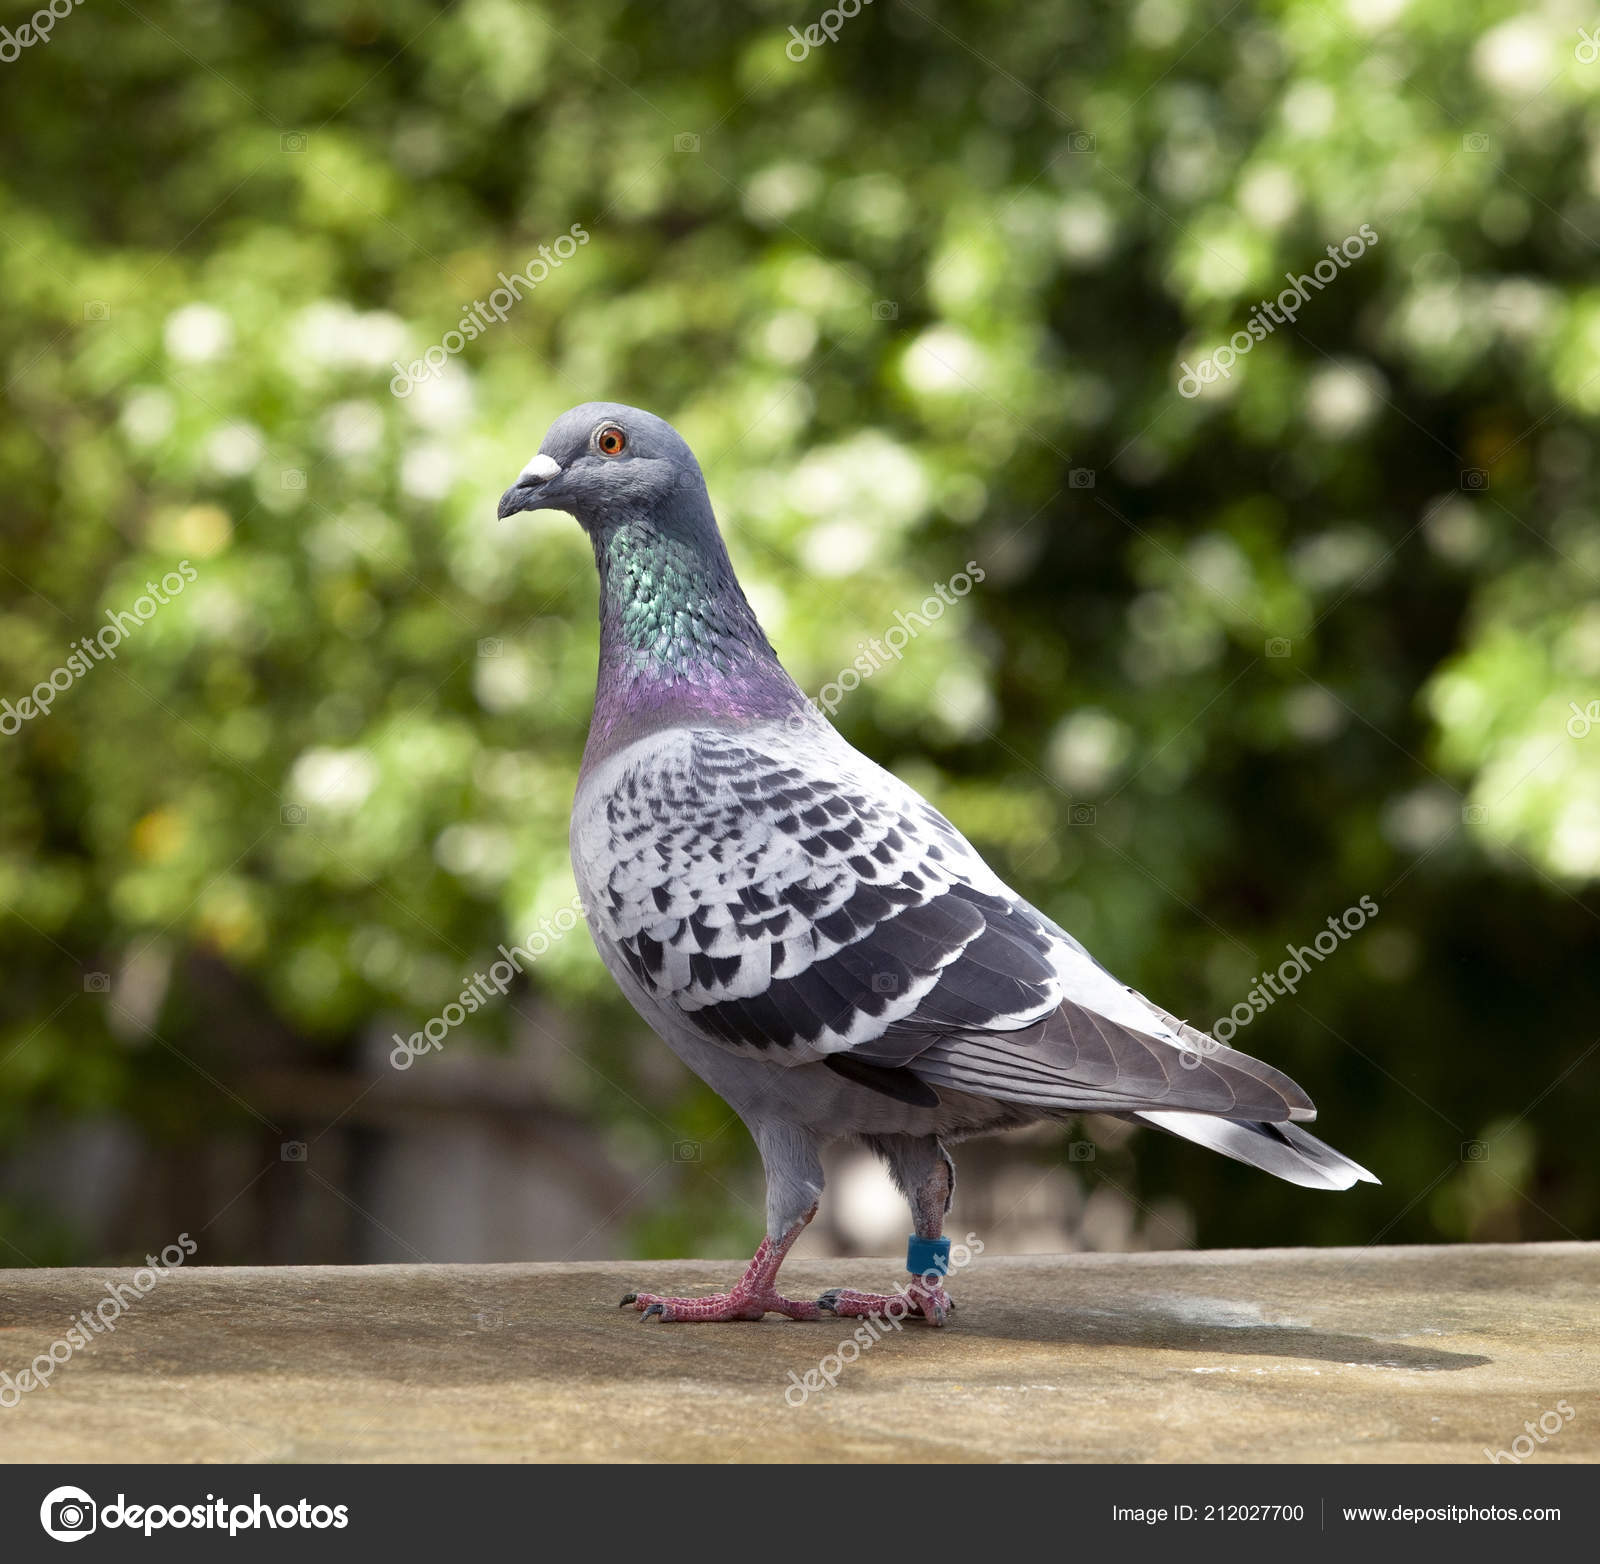 Pmages: racing pigeon lofts | Check Feather Pattern Homing